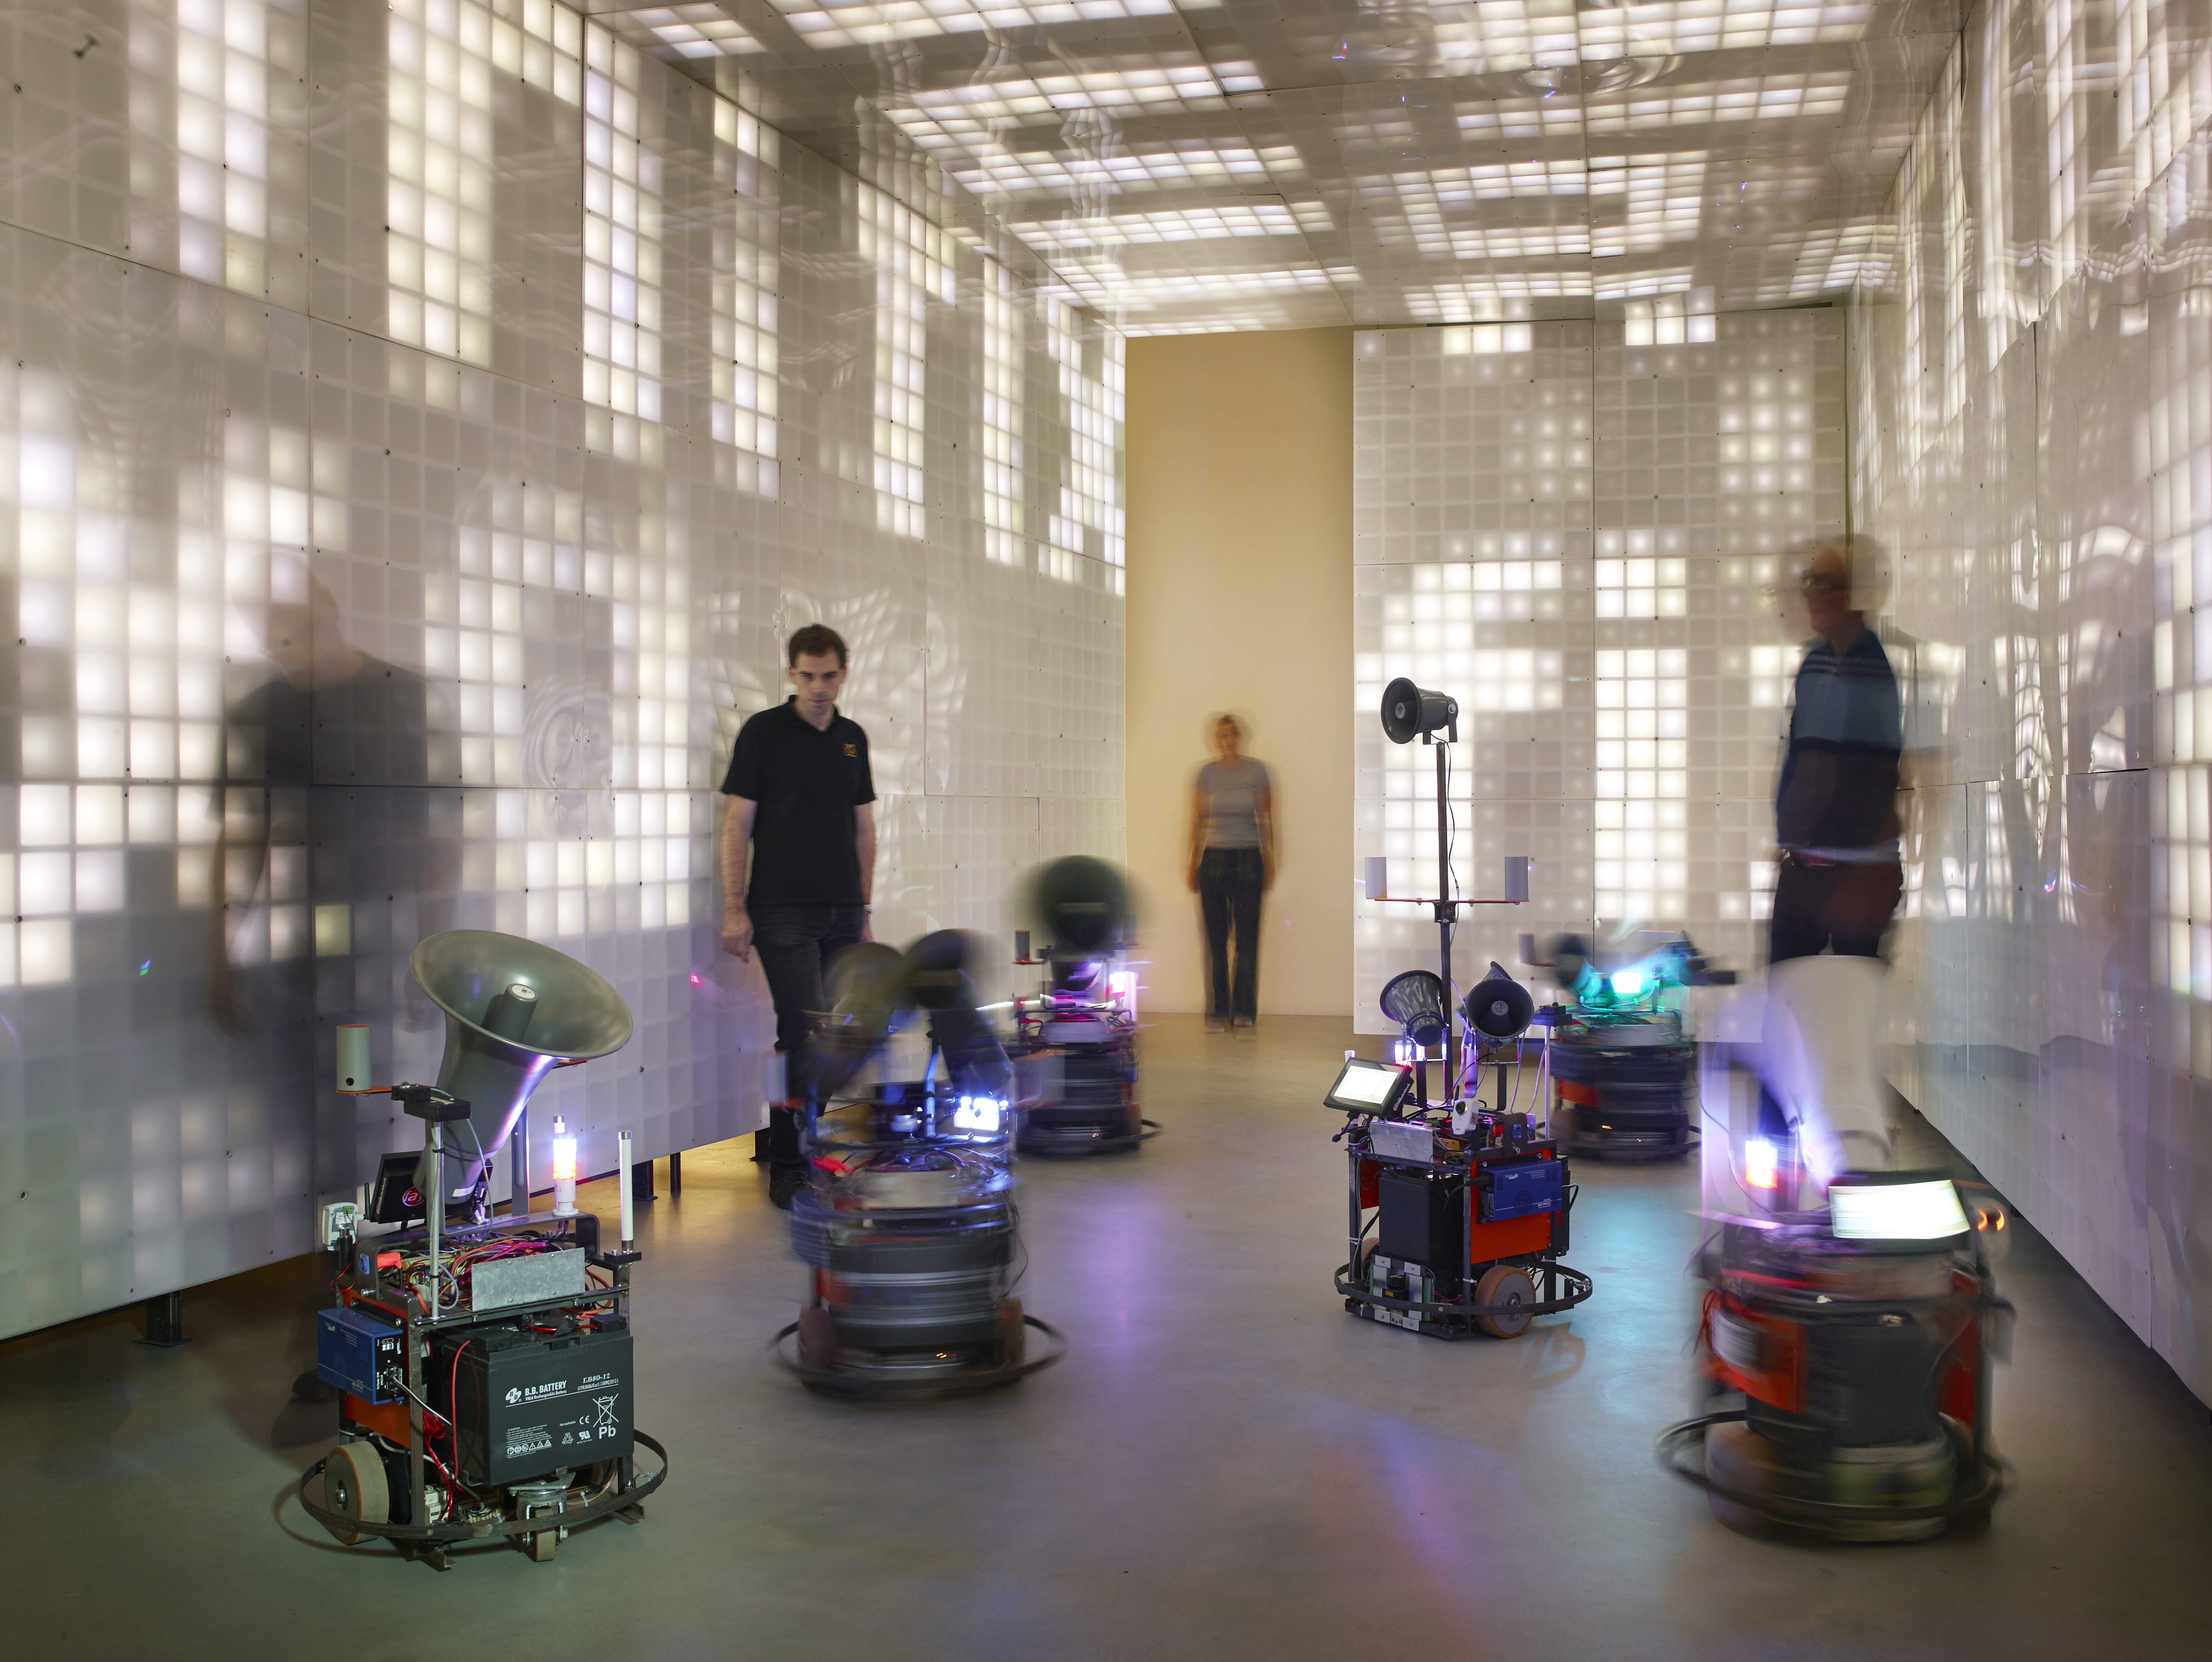 BBM (Observers of Operators of Machines): EPKOT (Experimental Prototype Killers of Tomorrow), 2018, interactive installation, mixed media (robots, displays, sound), installation view Kunsthalle Mannheim 2018, courtesy BBM, © photo: Hardy Müller, Mannheim